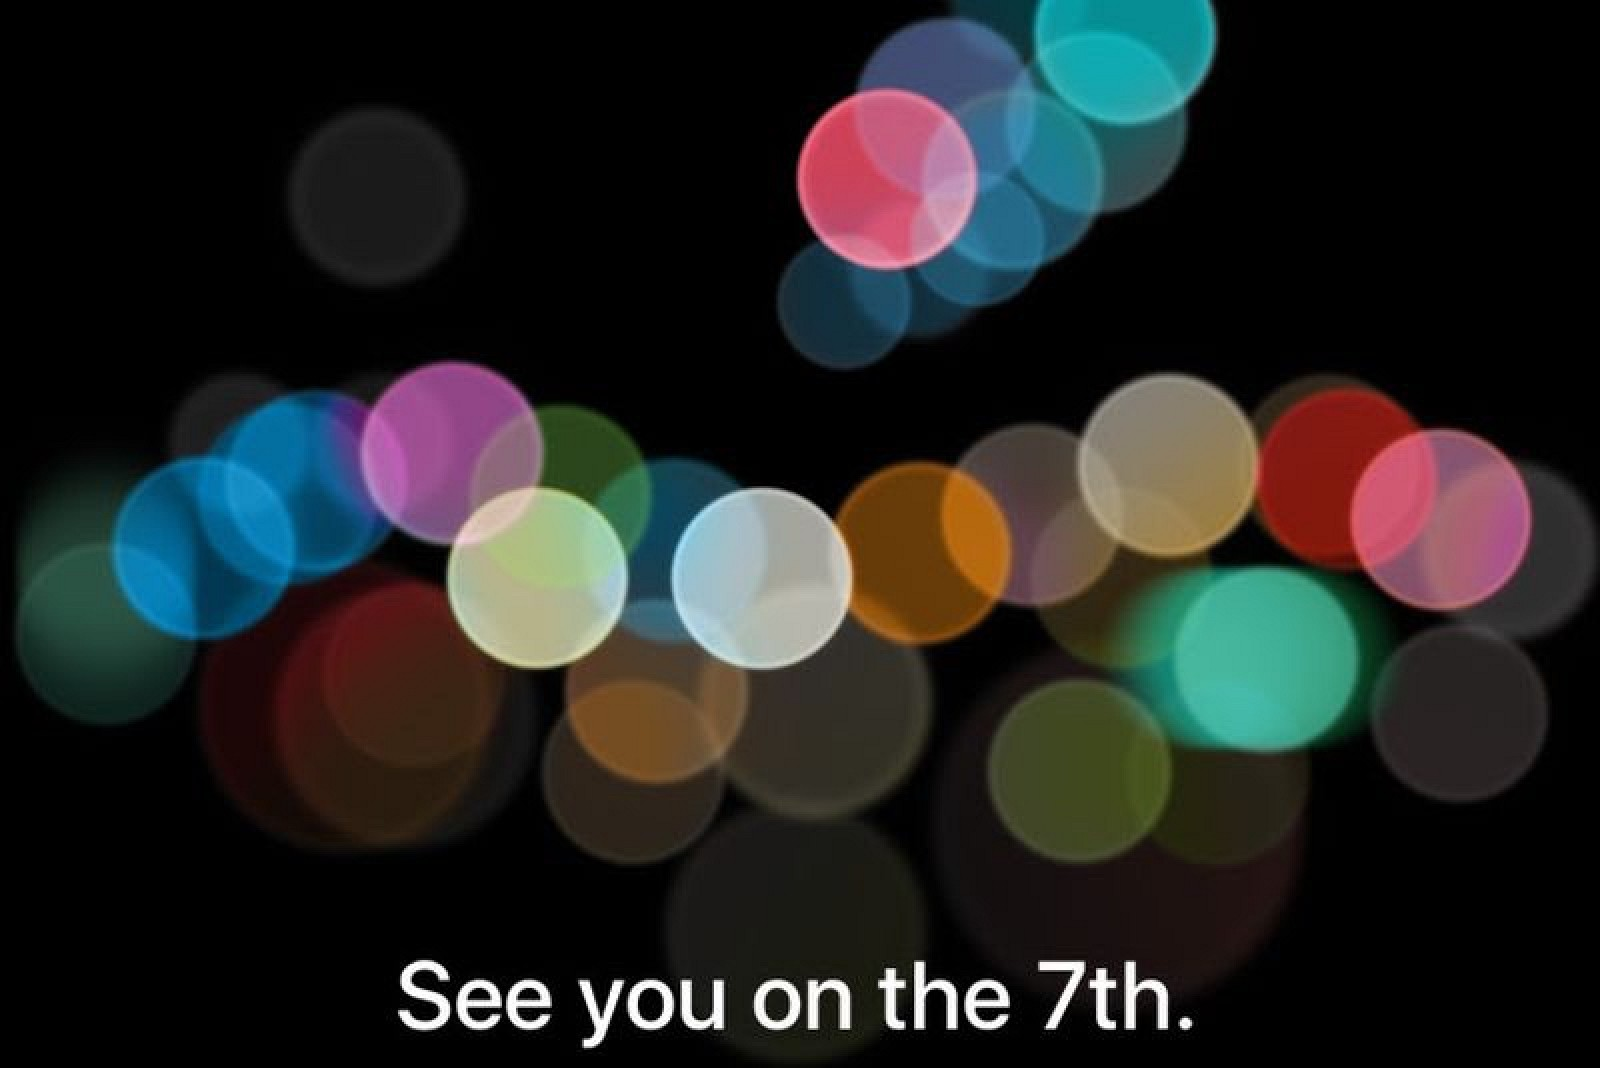 Hold av datoen - 7. september lanserer Apple ny iPhone